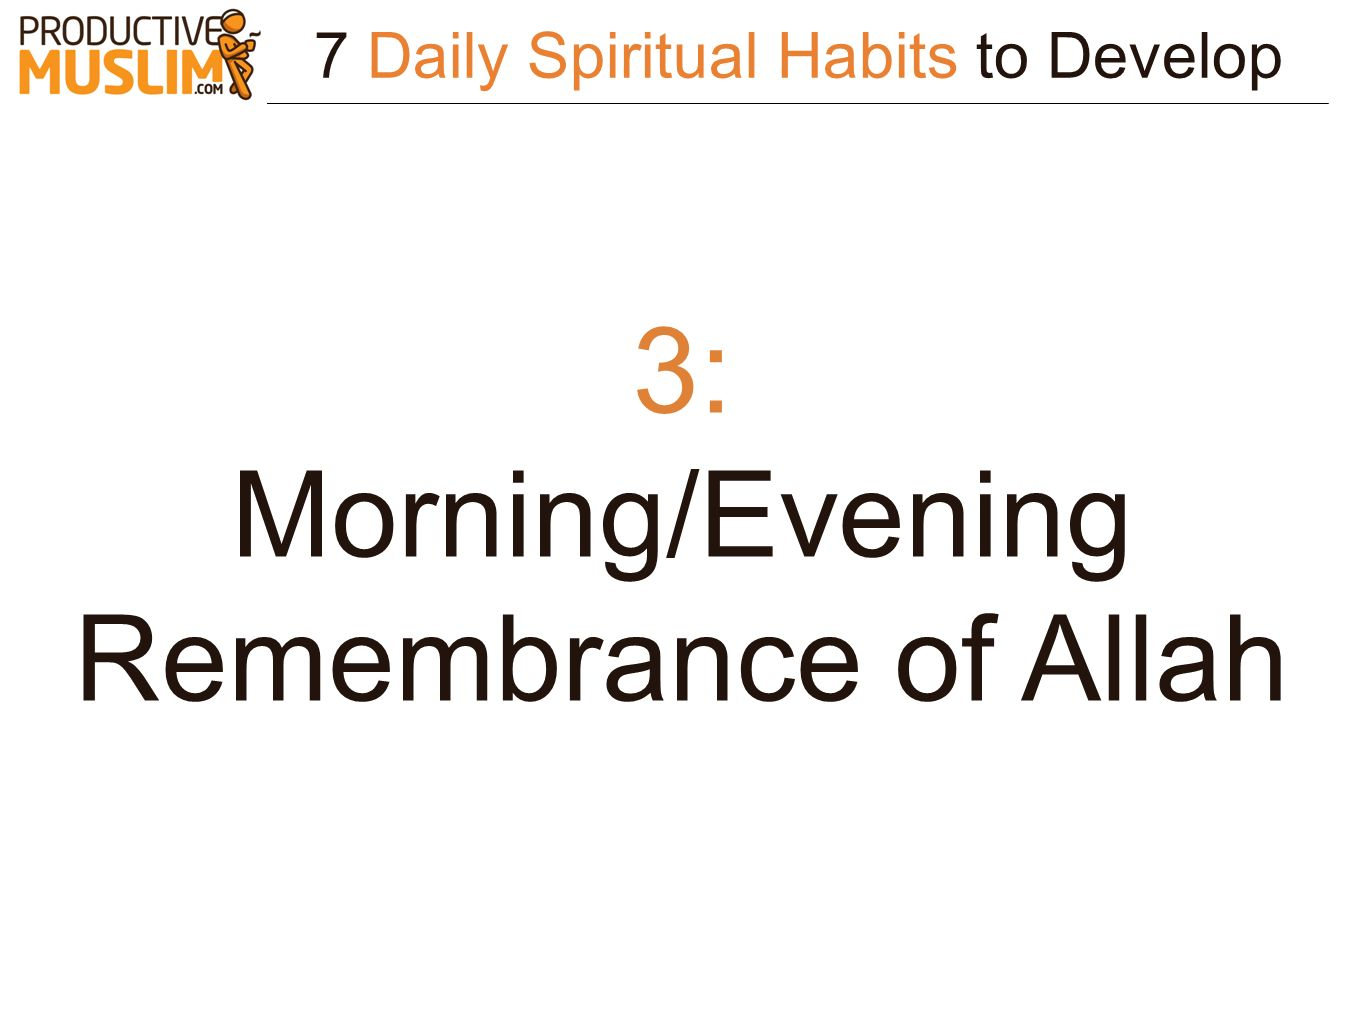 Morning/Evening Remembrance of Allah